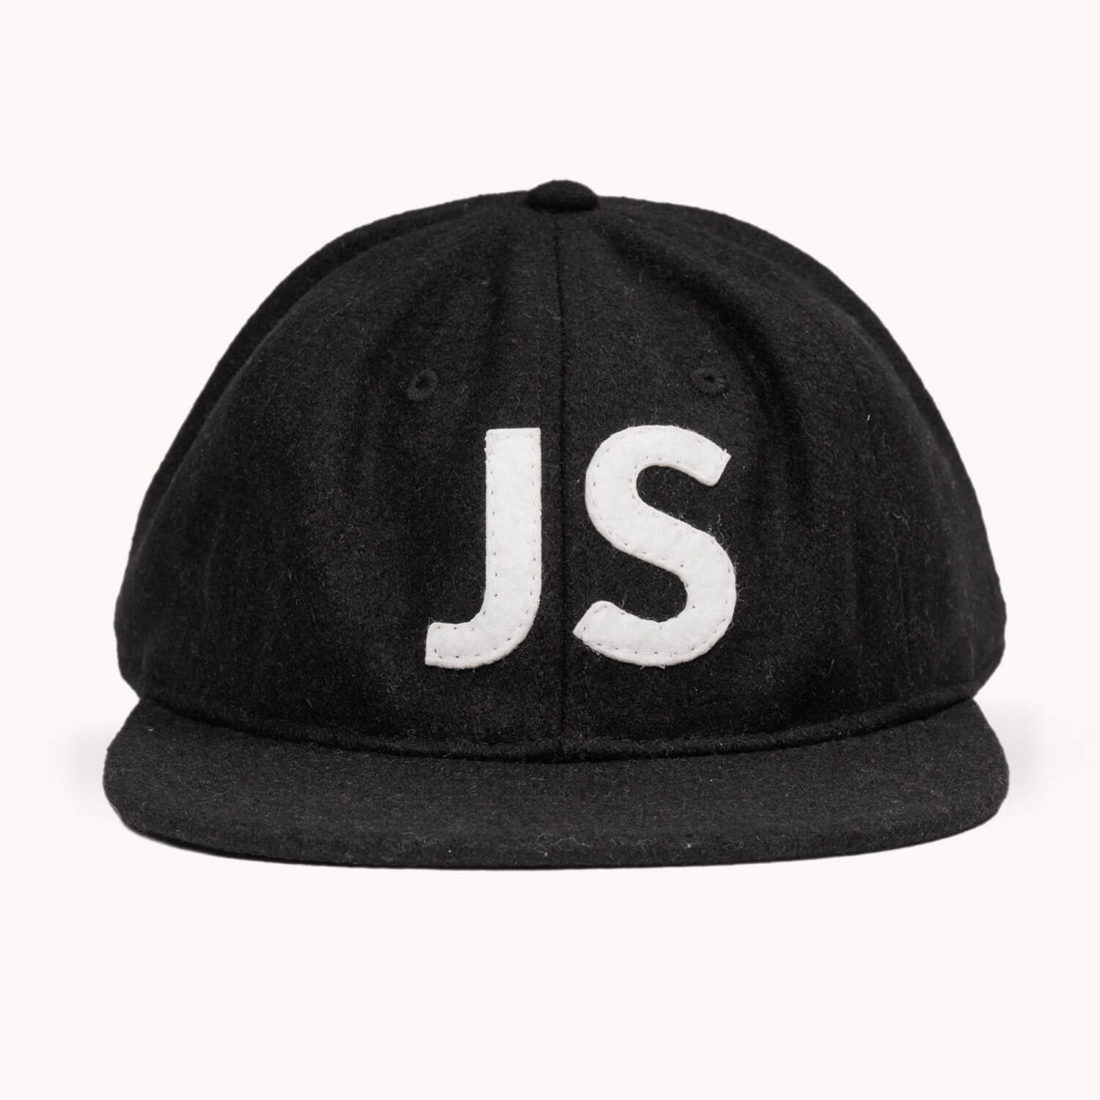 Team Hat - Black 2